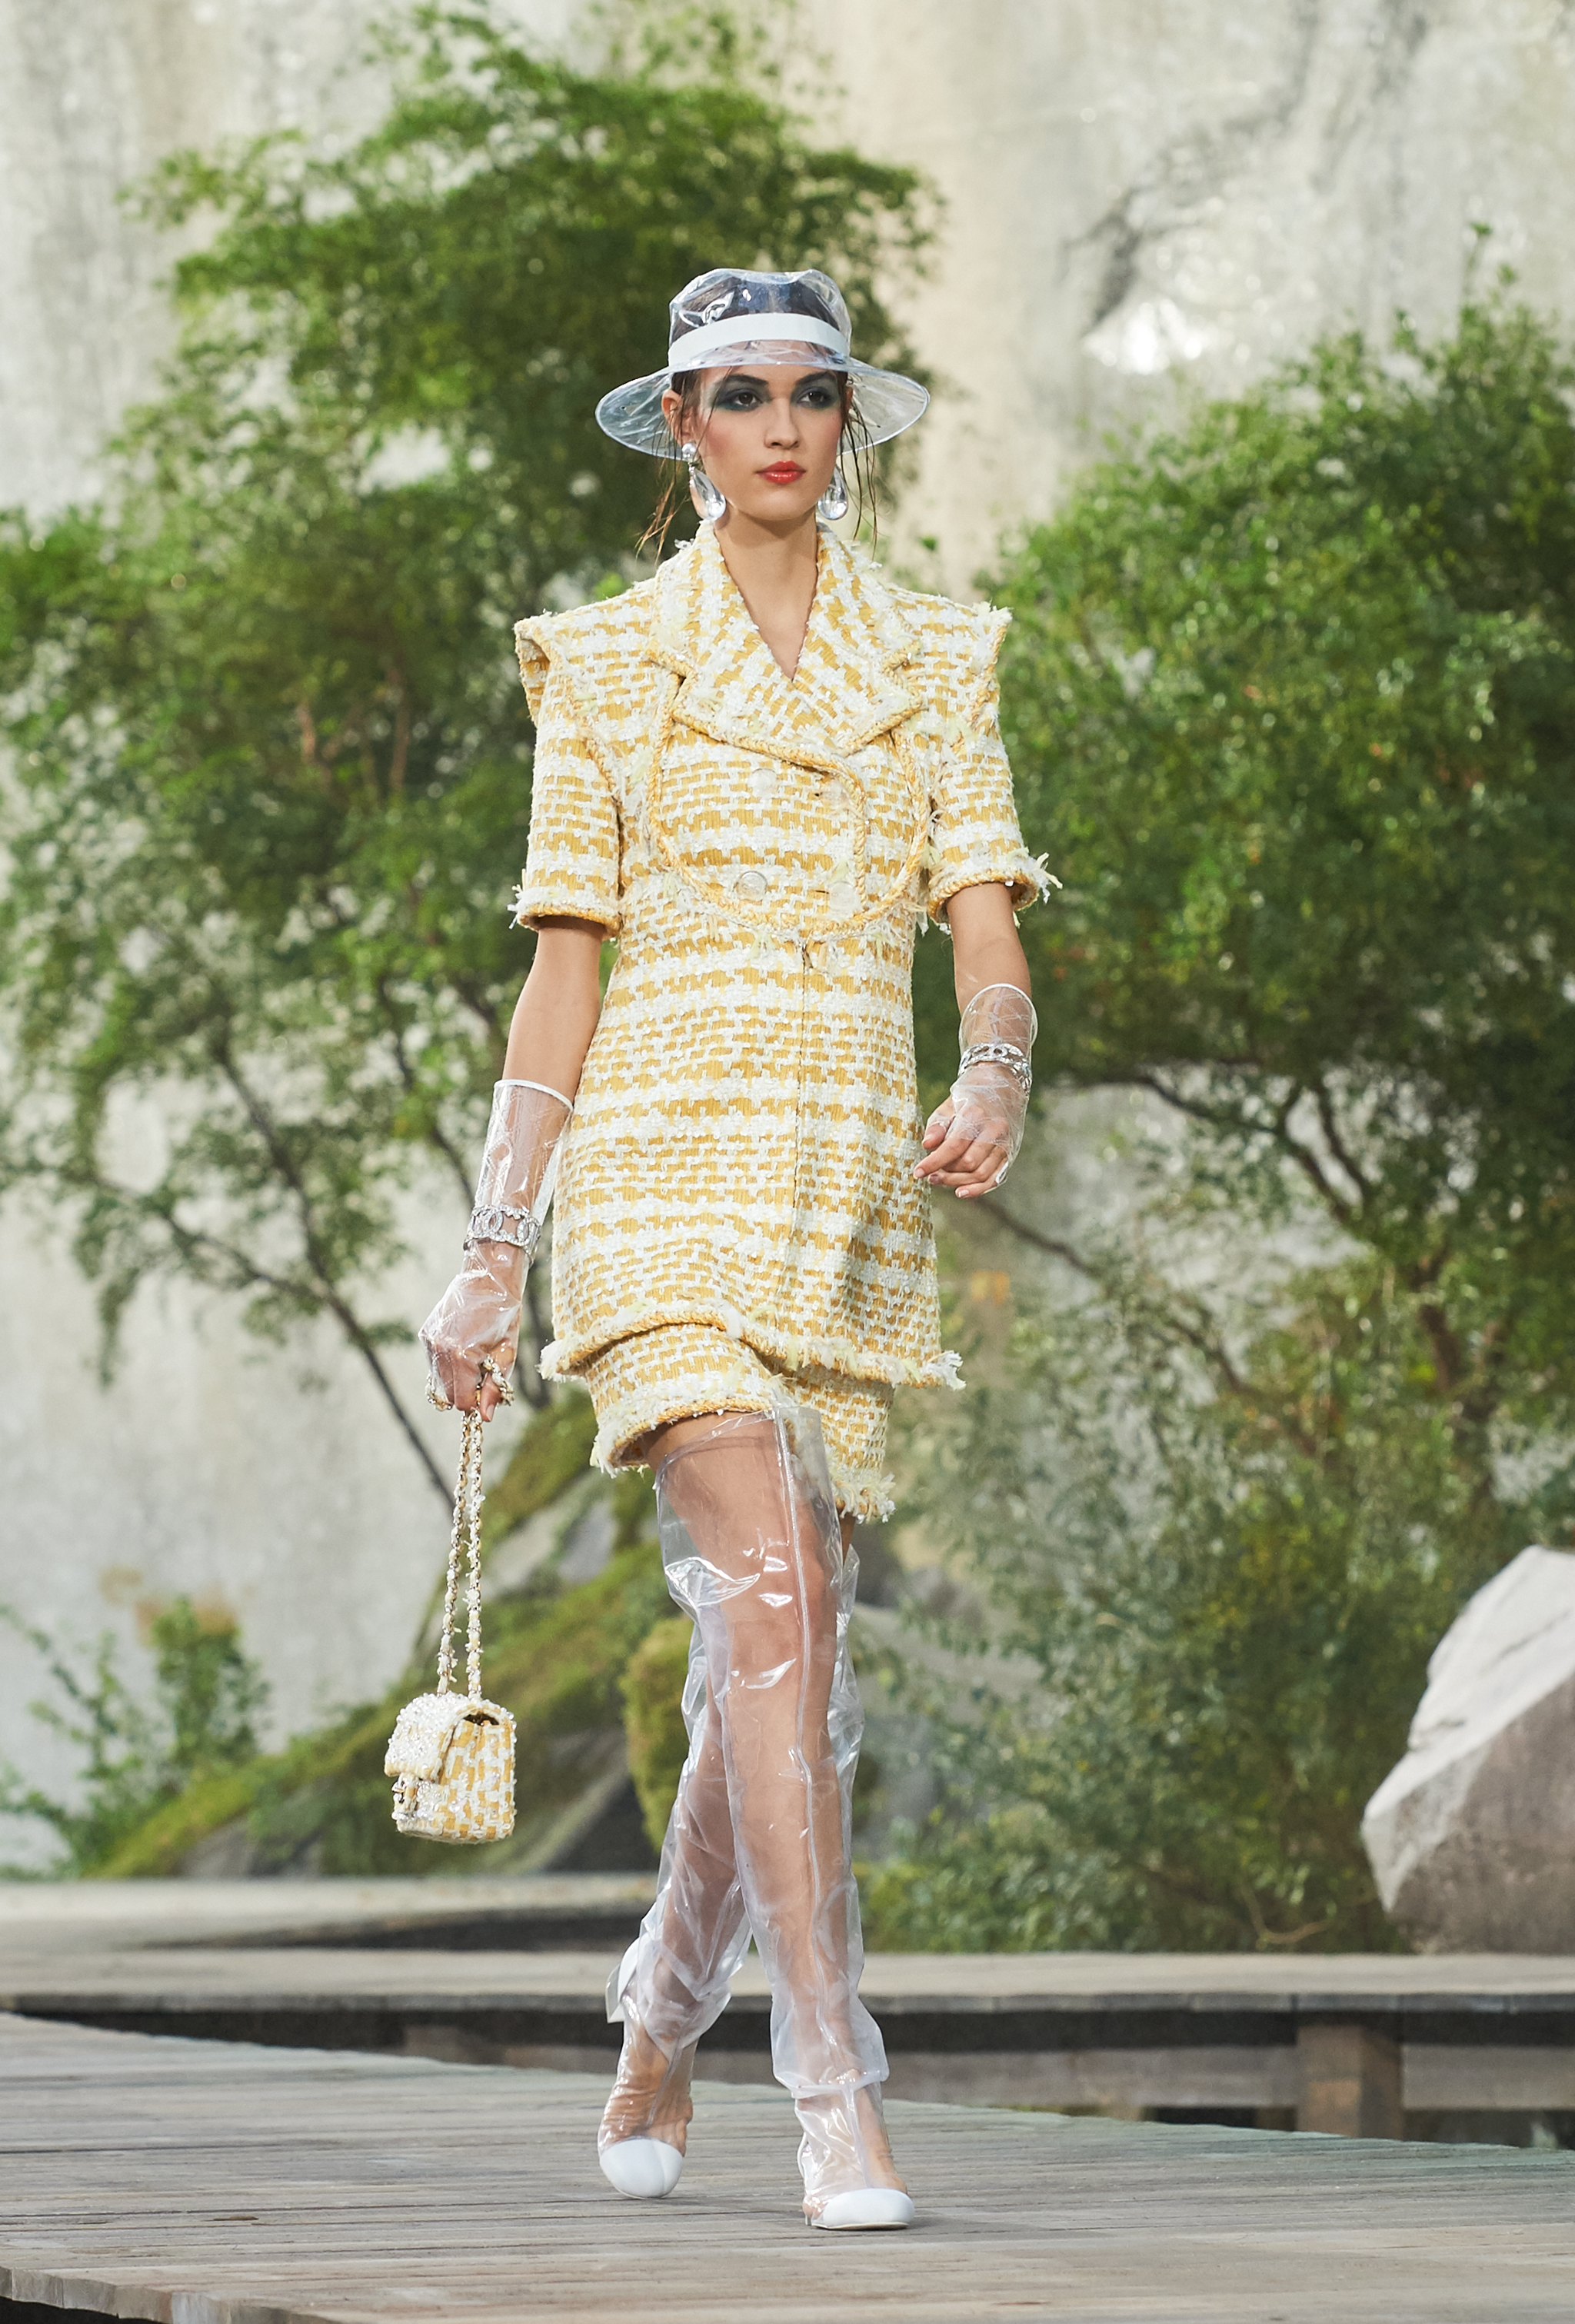 acd13dff4c9a A CASCADE OF COLORS FOR THE CHANEL SPRING-SUMMER 2018 READY-TO-WEAR ...